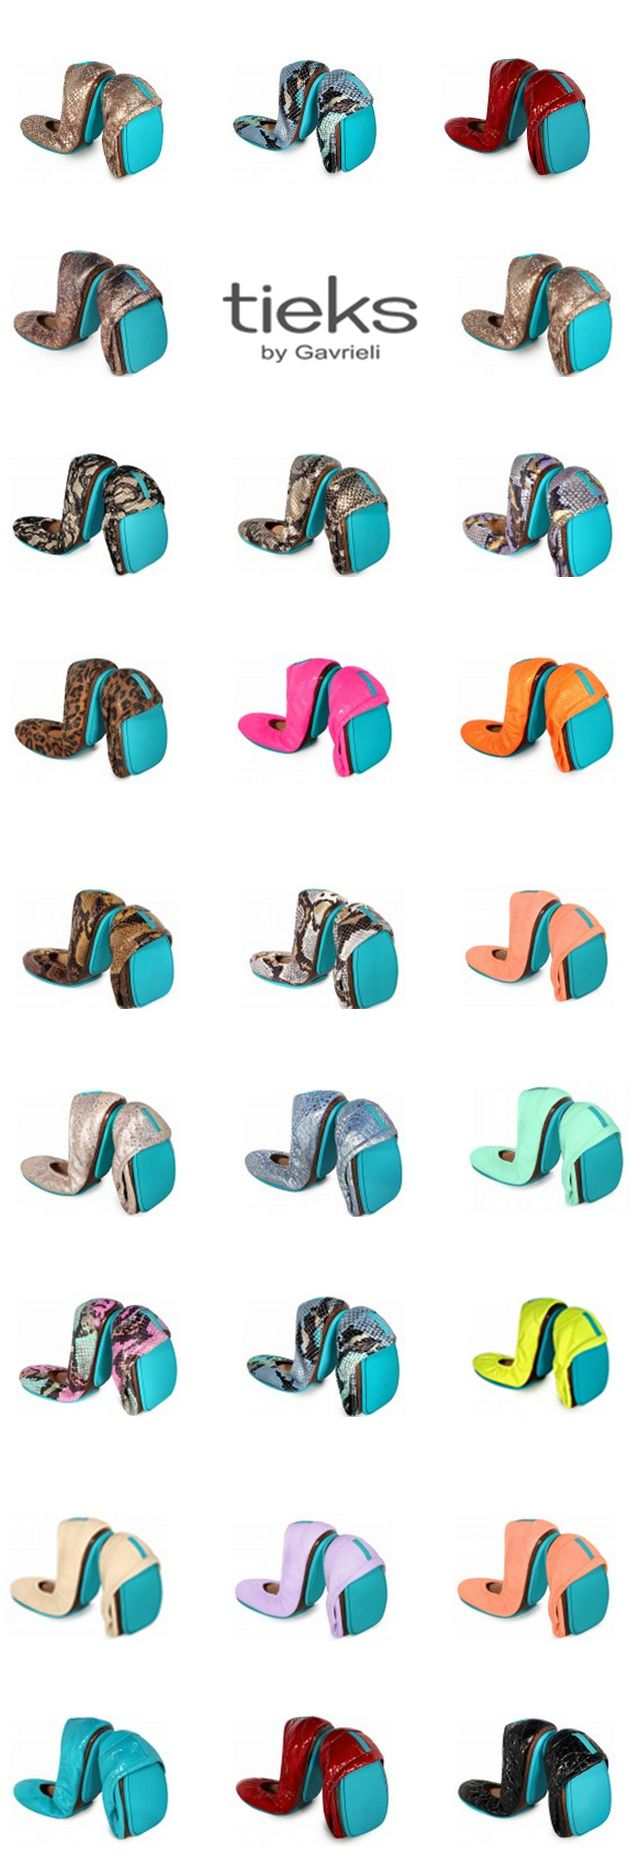 Attention: Tieks fans! For the only time this year, save up to 20% off! Click below to access the sale: And then use the invitation code:  TIEKBLUE689C. The most comfortable flats ever! Great for gifts: includes the prettiest wrapping @Tieks by Gavrieli by Gavrieli http://rstyle.me/n/c8pixn2bn